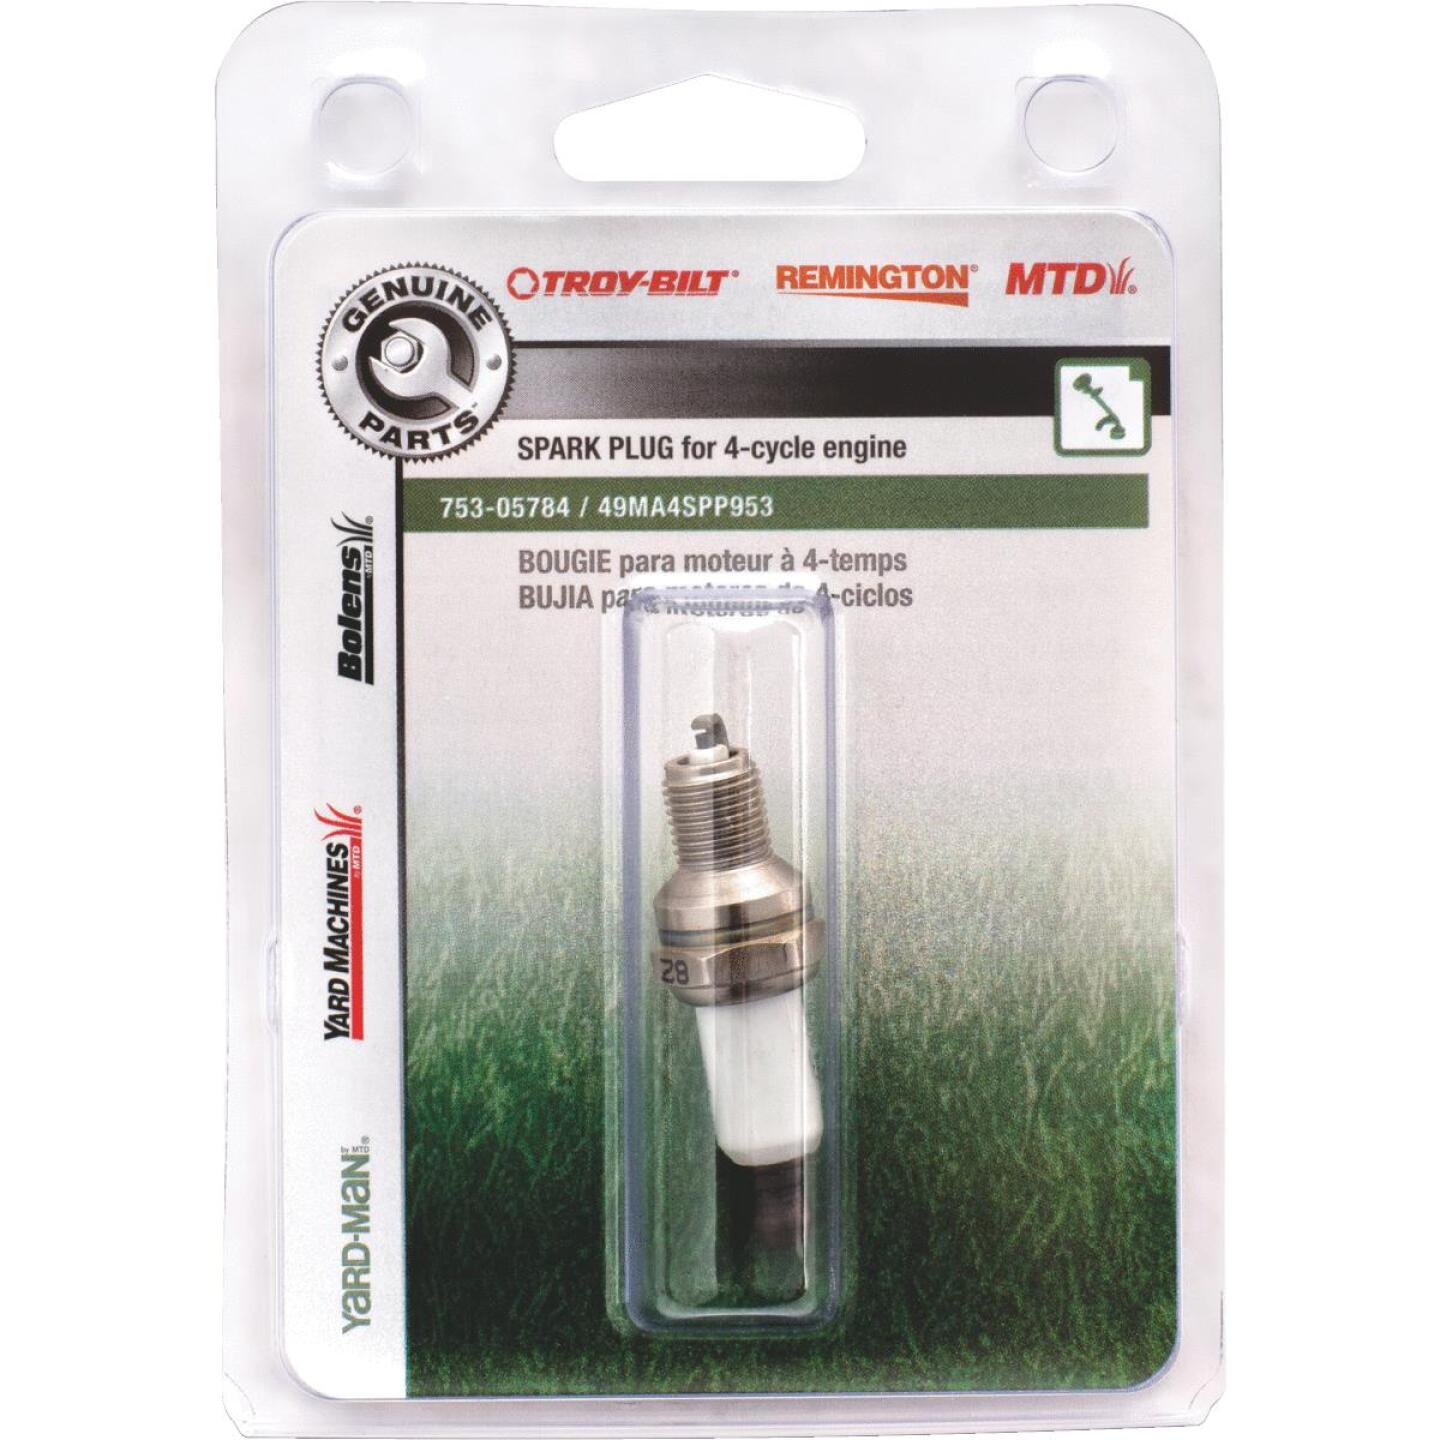 Arnold MTD 5/8 In. 4-Cycle Spark Plug Image 2